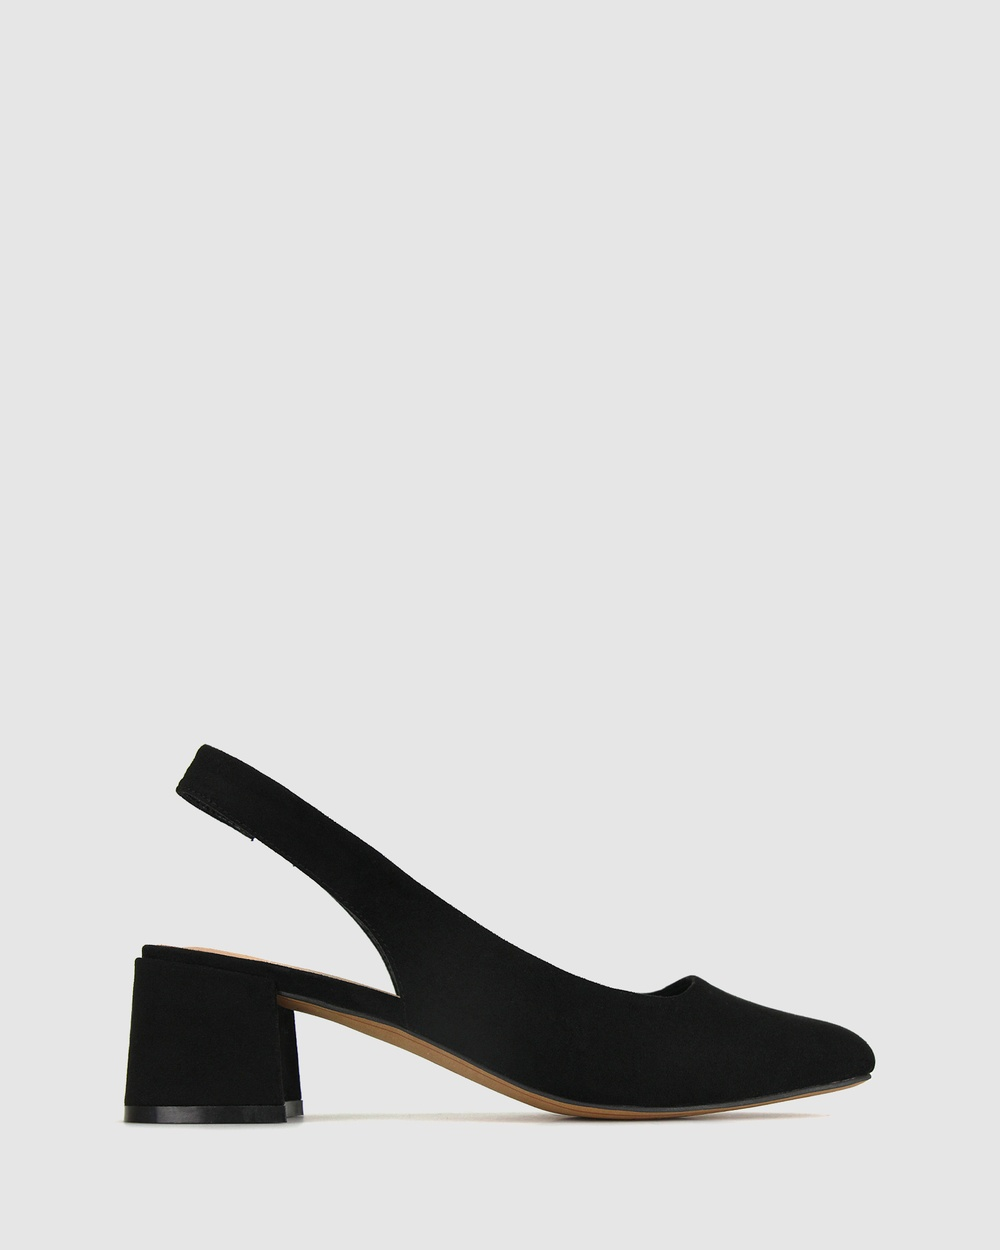 Betts Scout Sling Back Pumps All Black